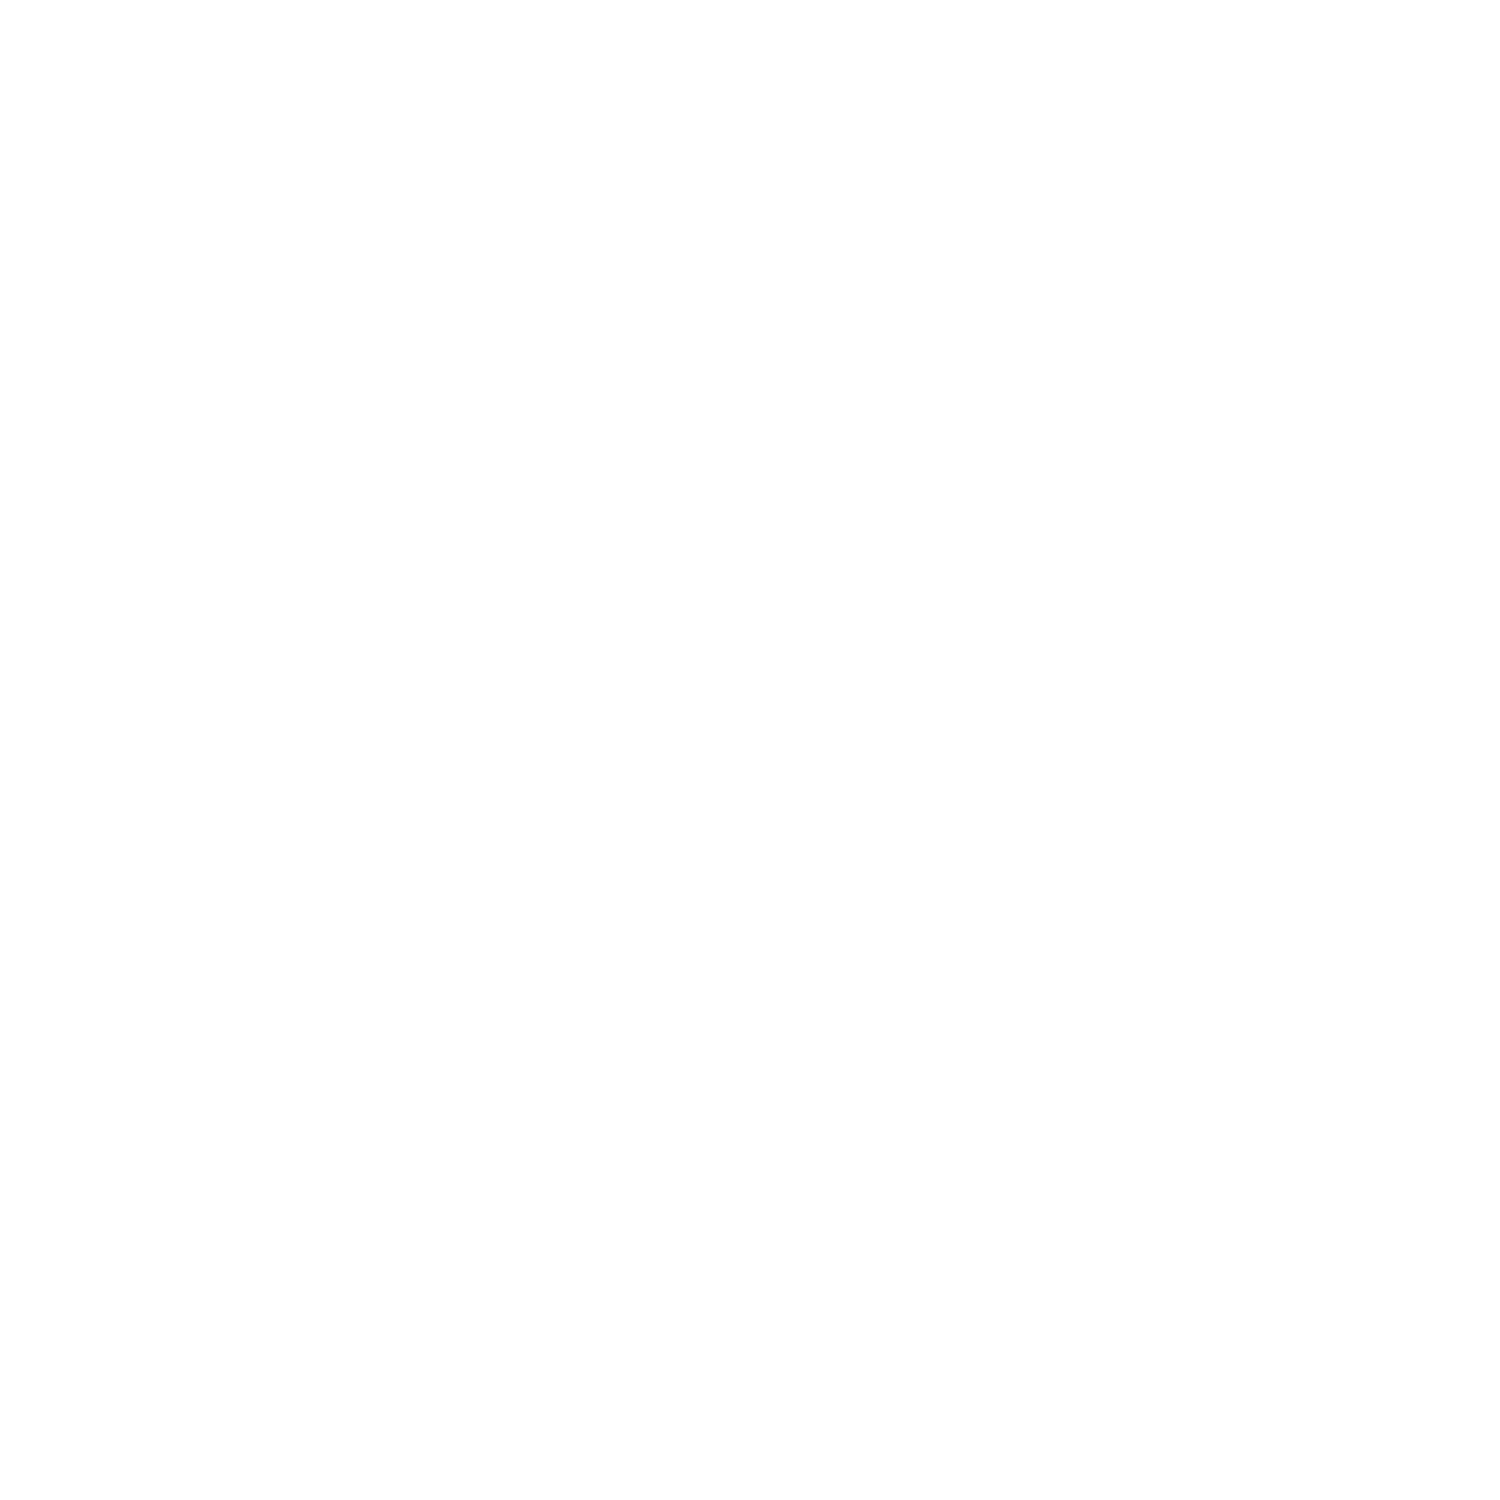 Catchlight Studio and Gallery